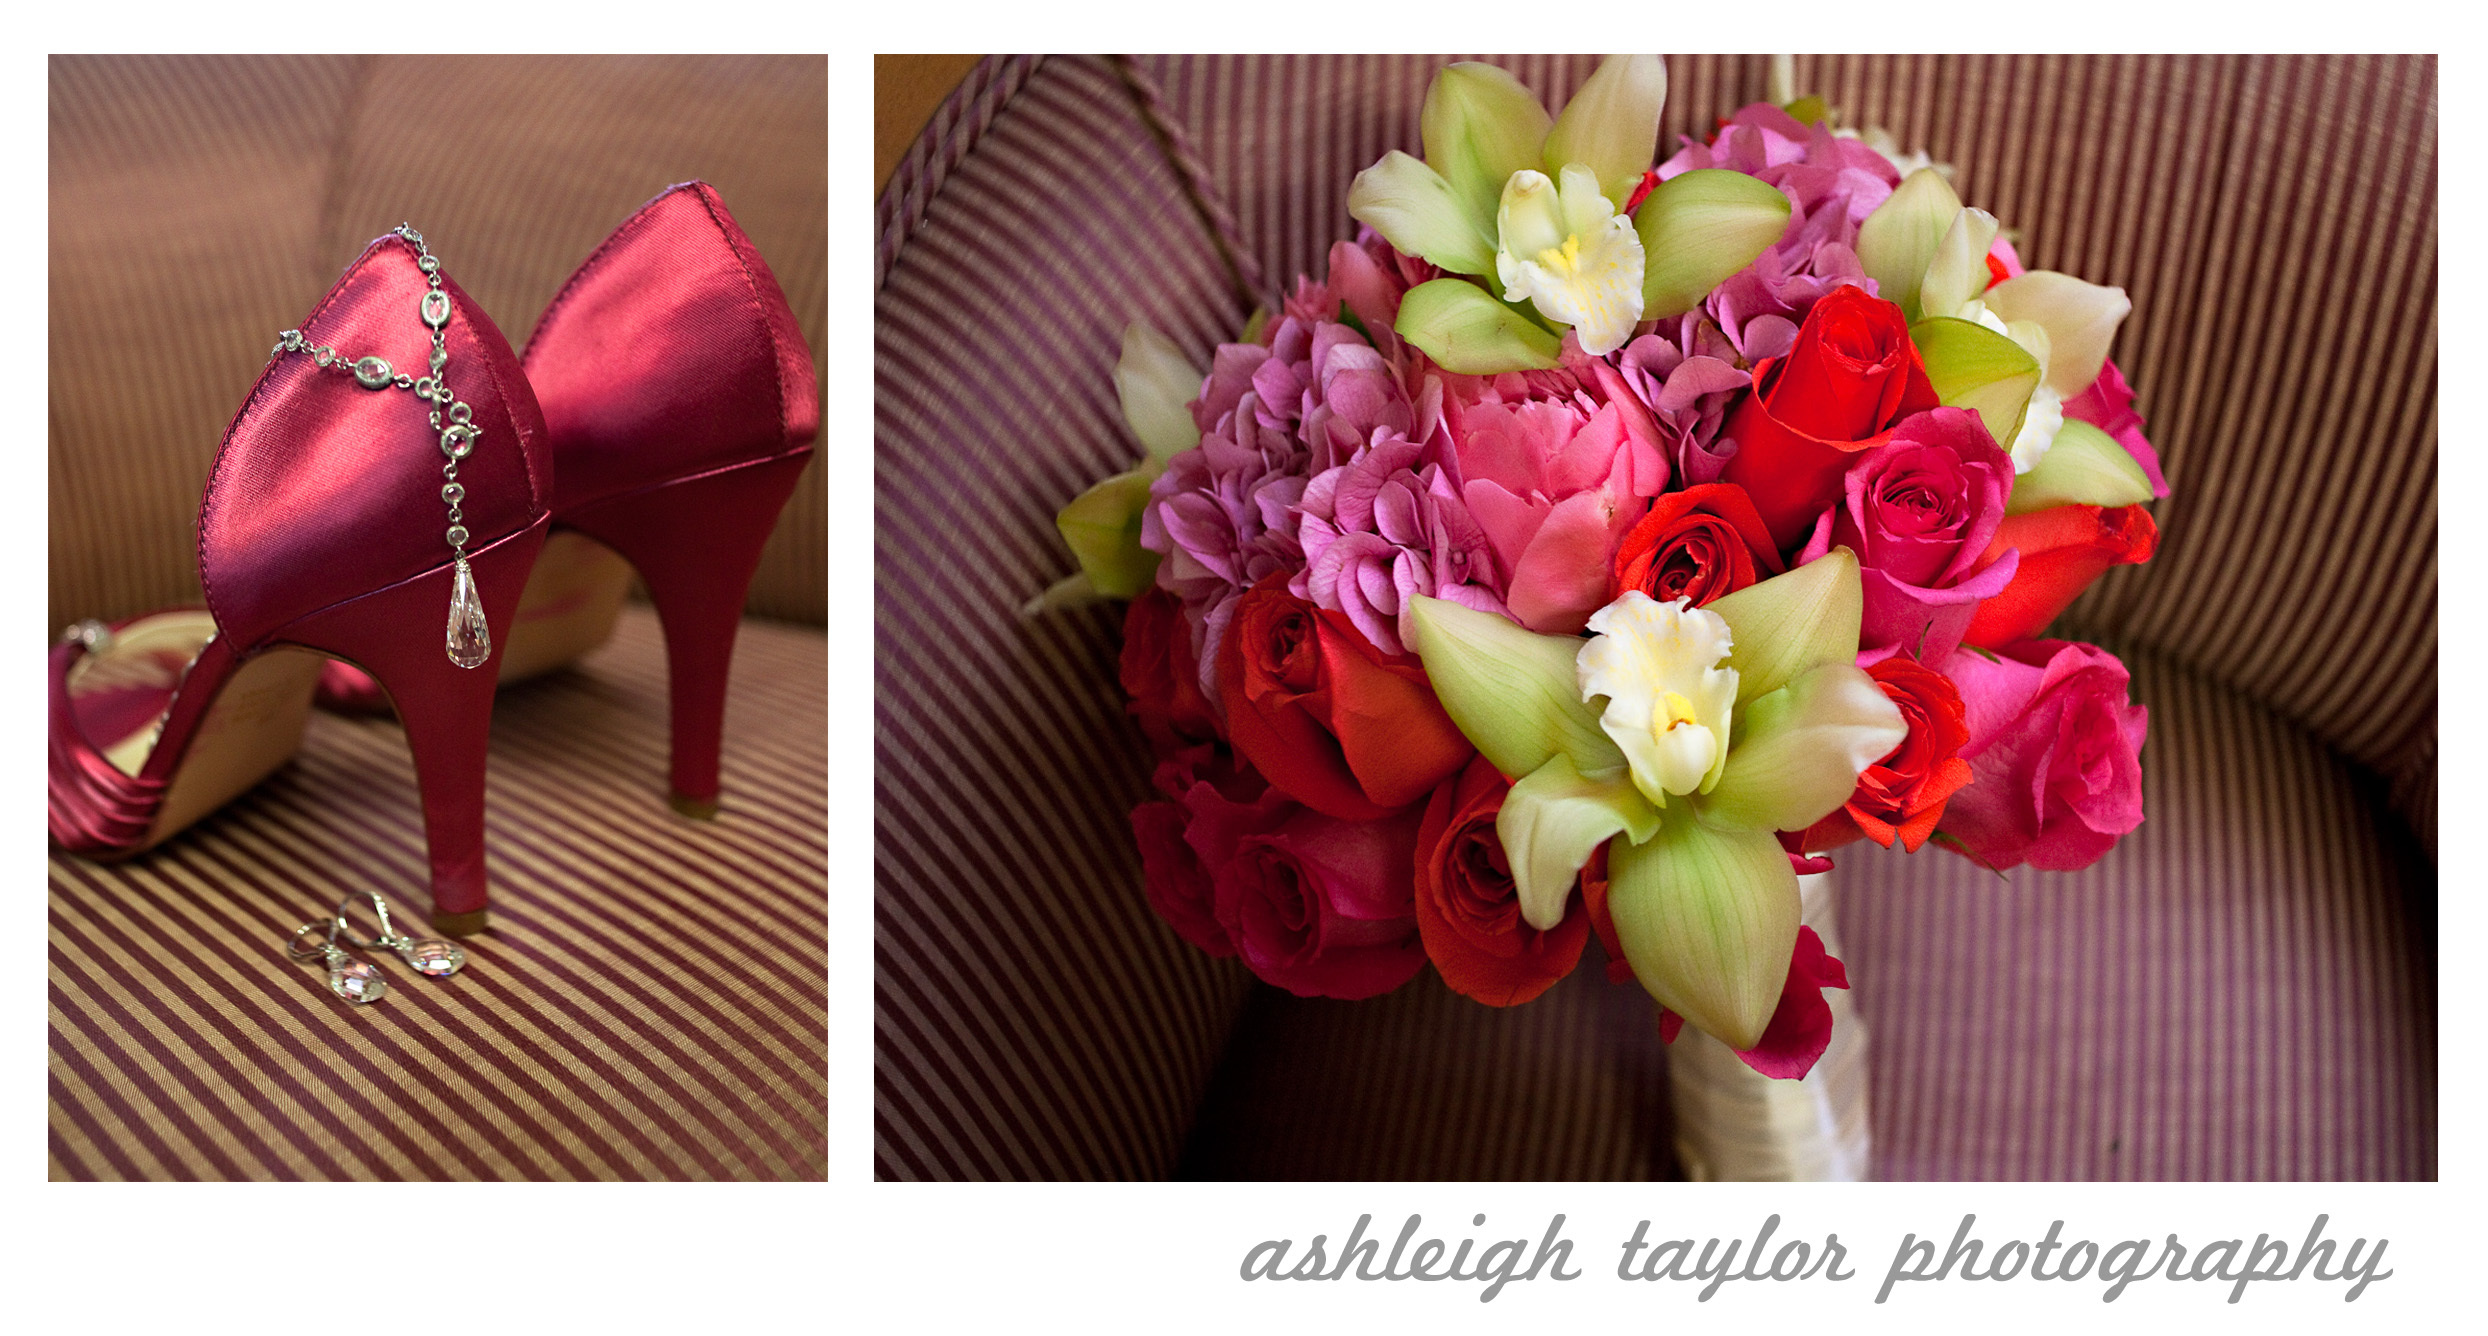 Flowers & Decor, Shoes, Fashion, pink, green, Bride Bouquets, Flowers, Bouquet, Ashleigh taylor photography, Flower Wedding Dresses